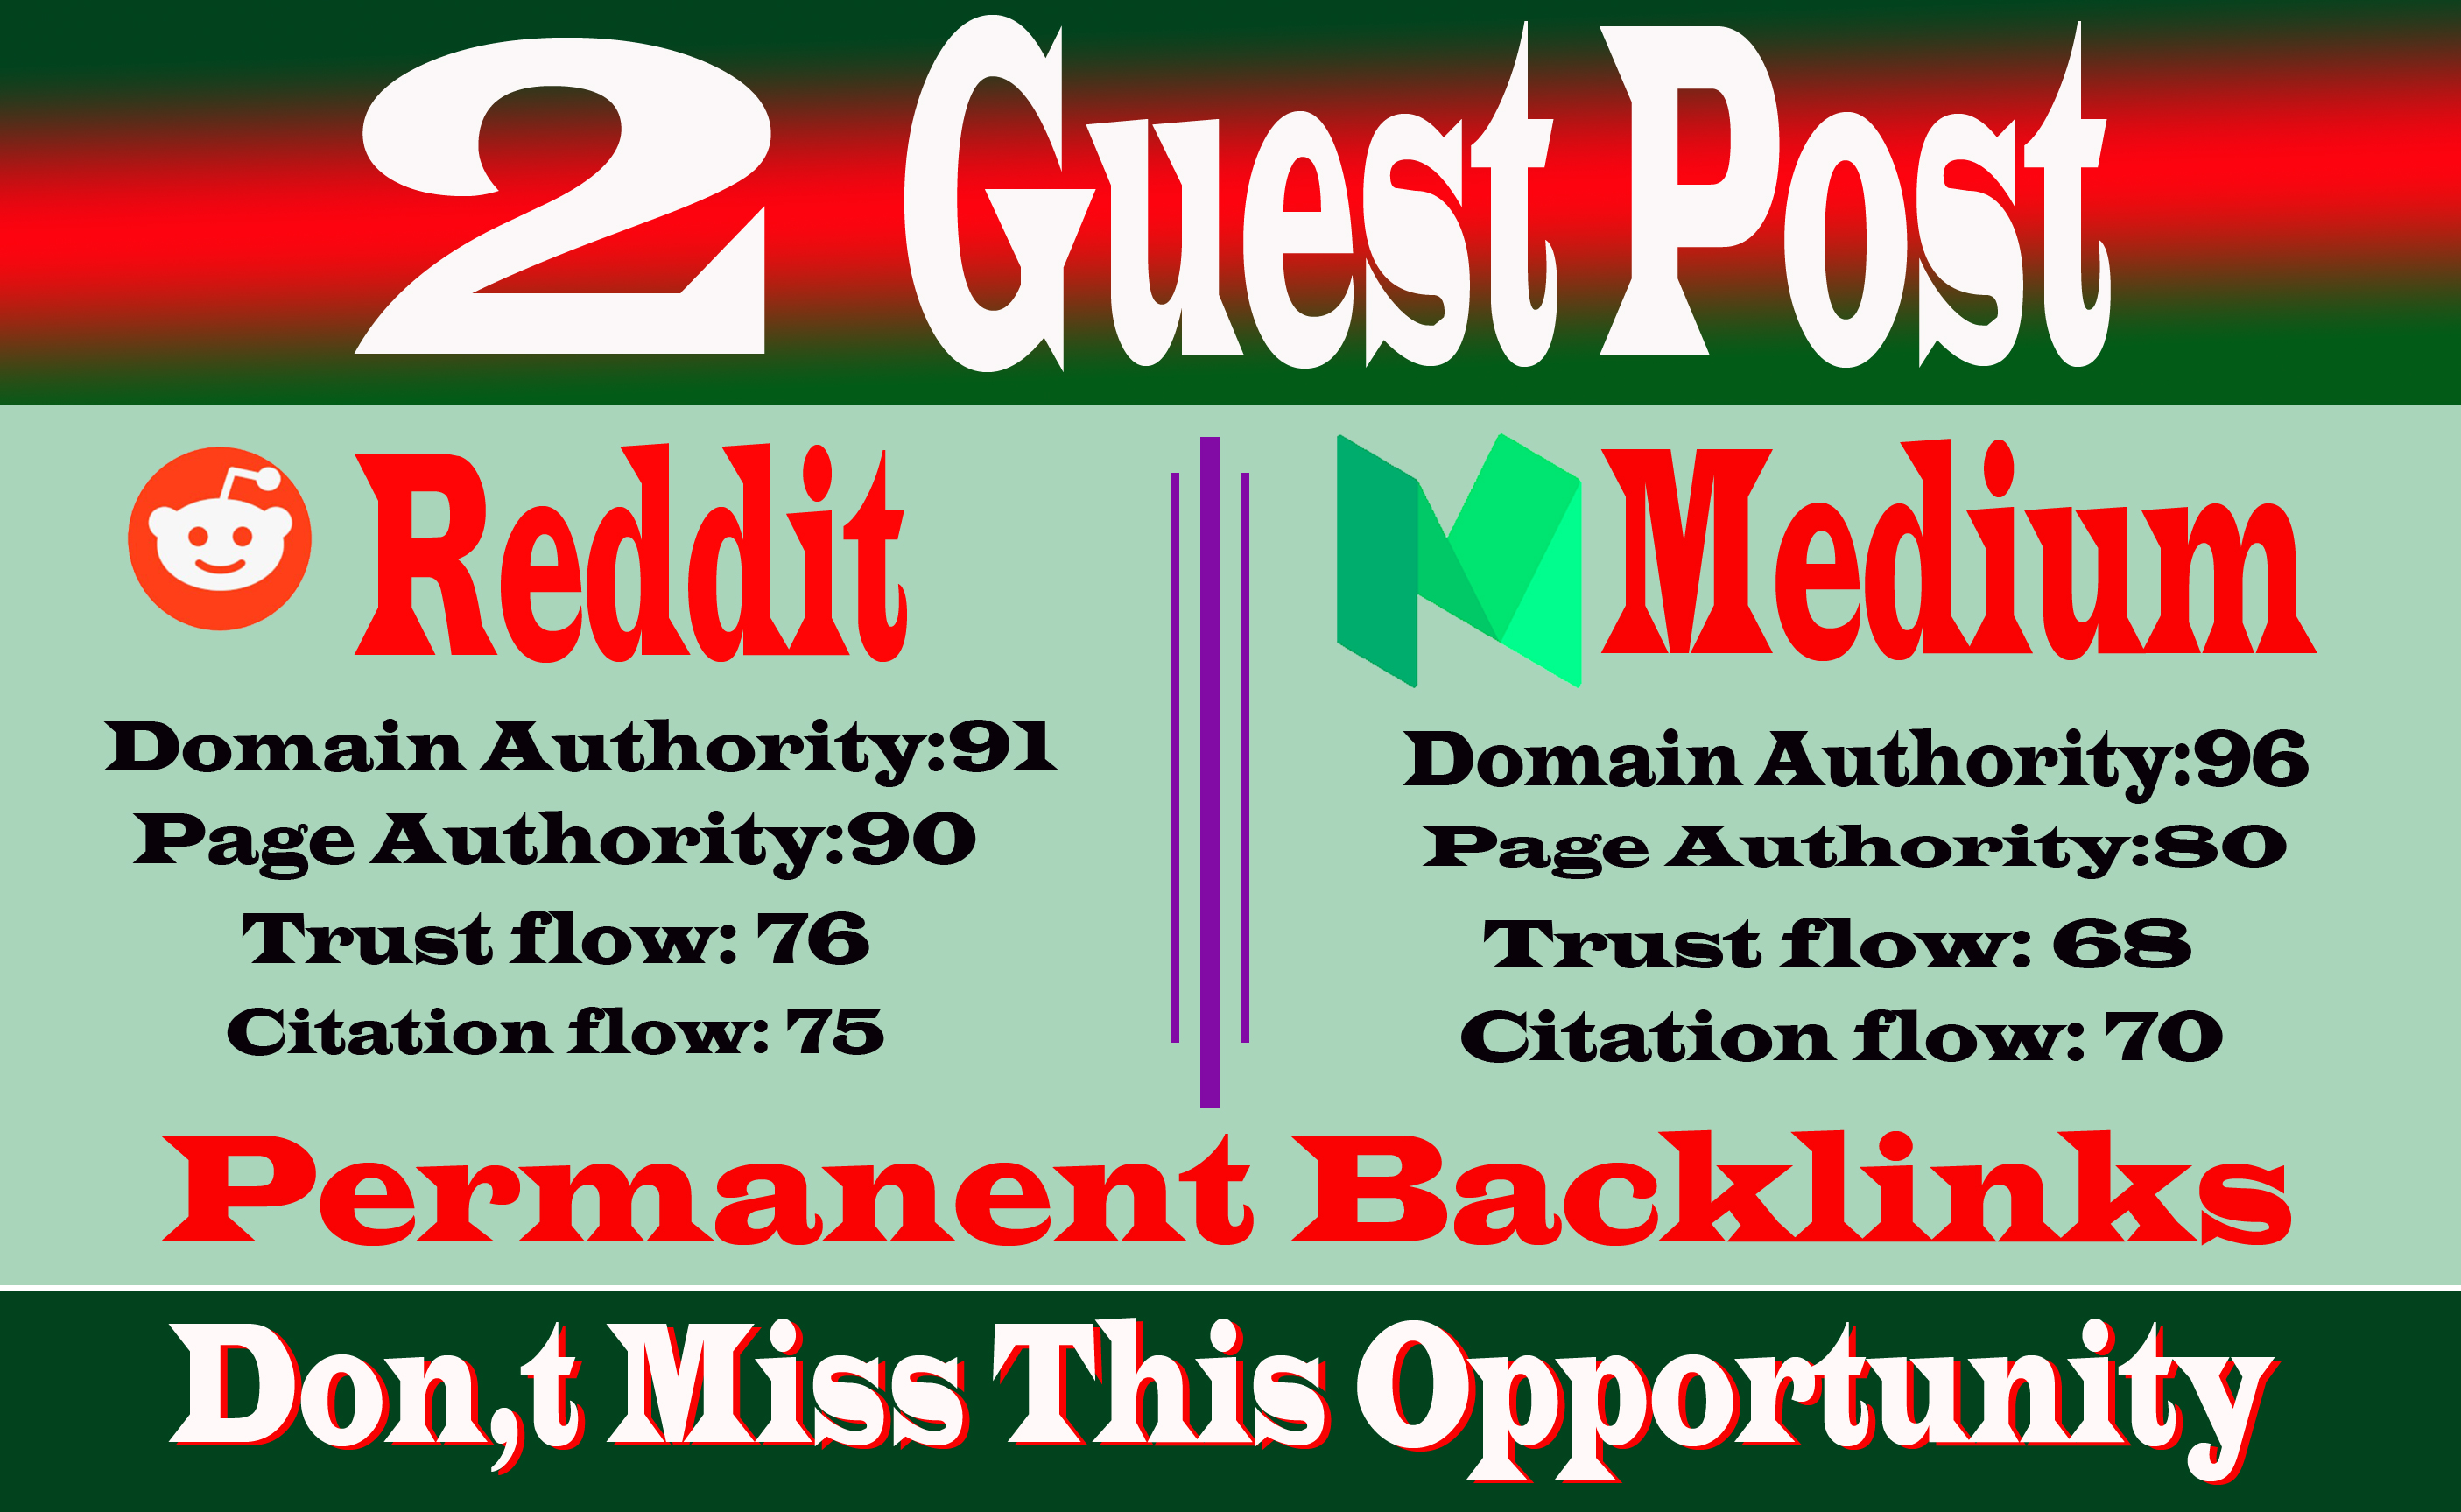 write and publish 2 Guest Posts on High DA PA Sites With Reddit,  Medium